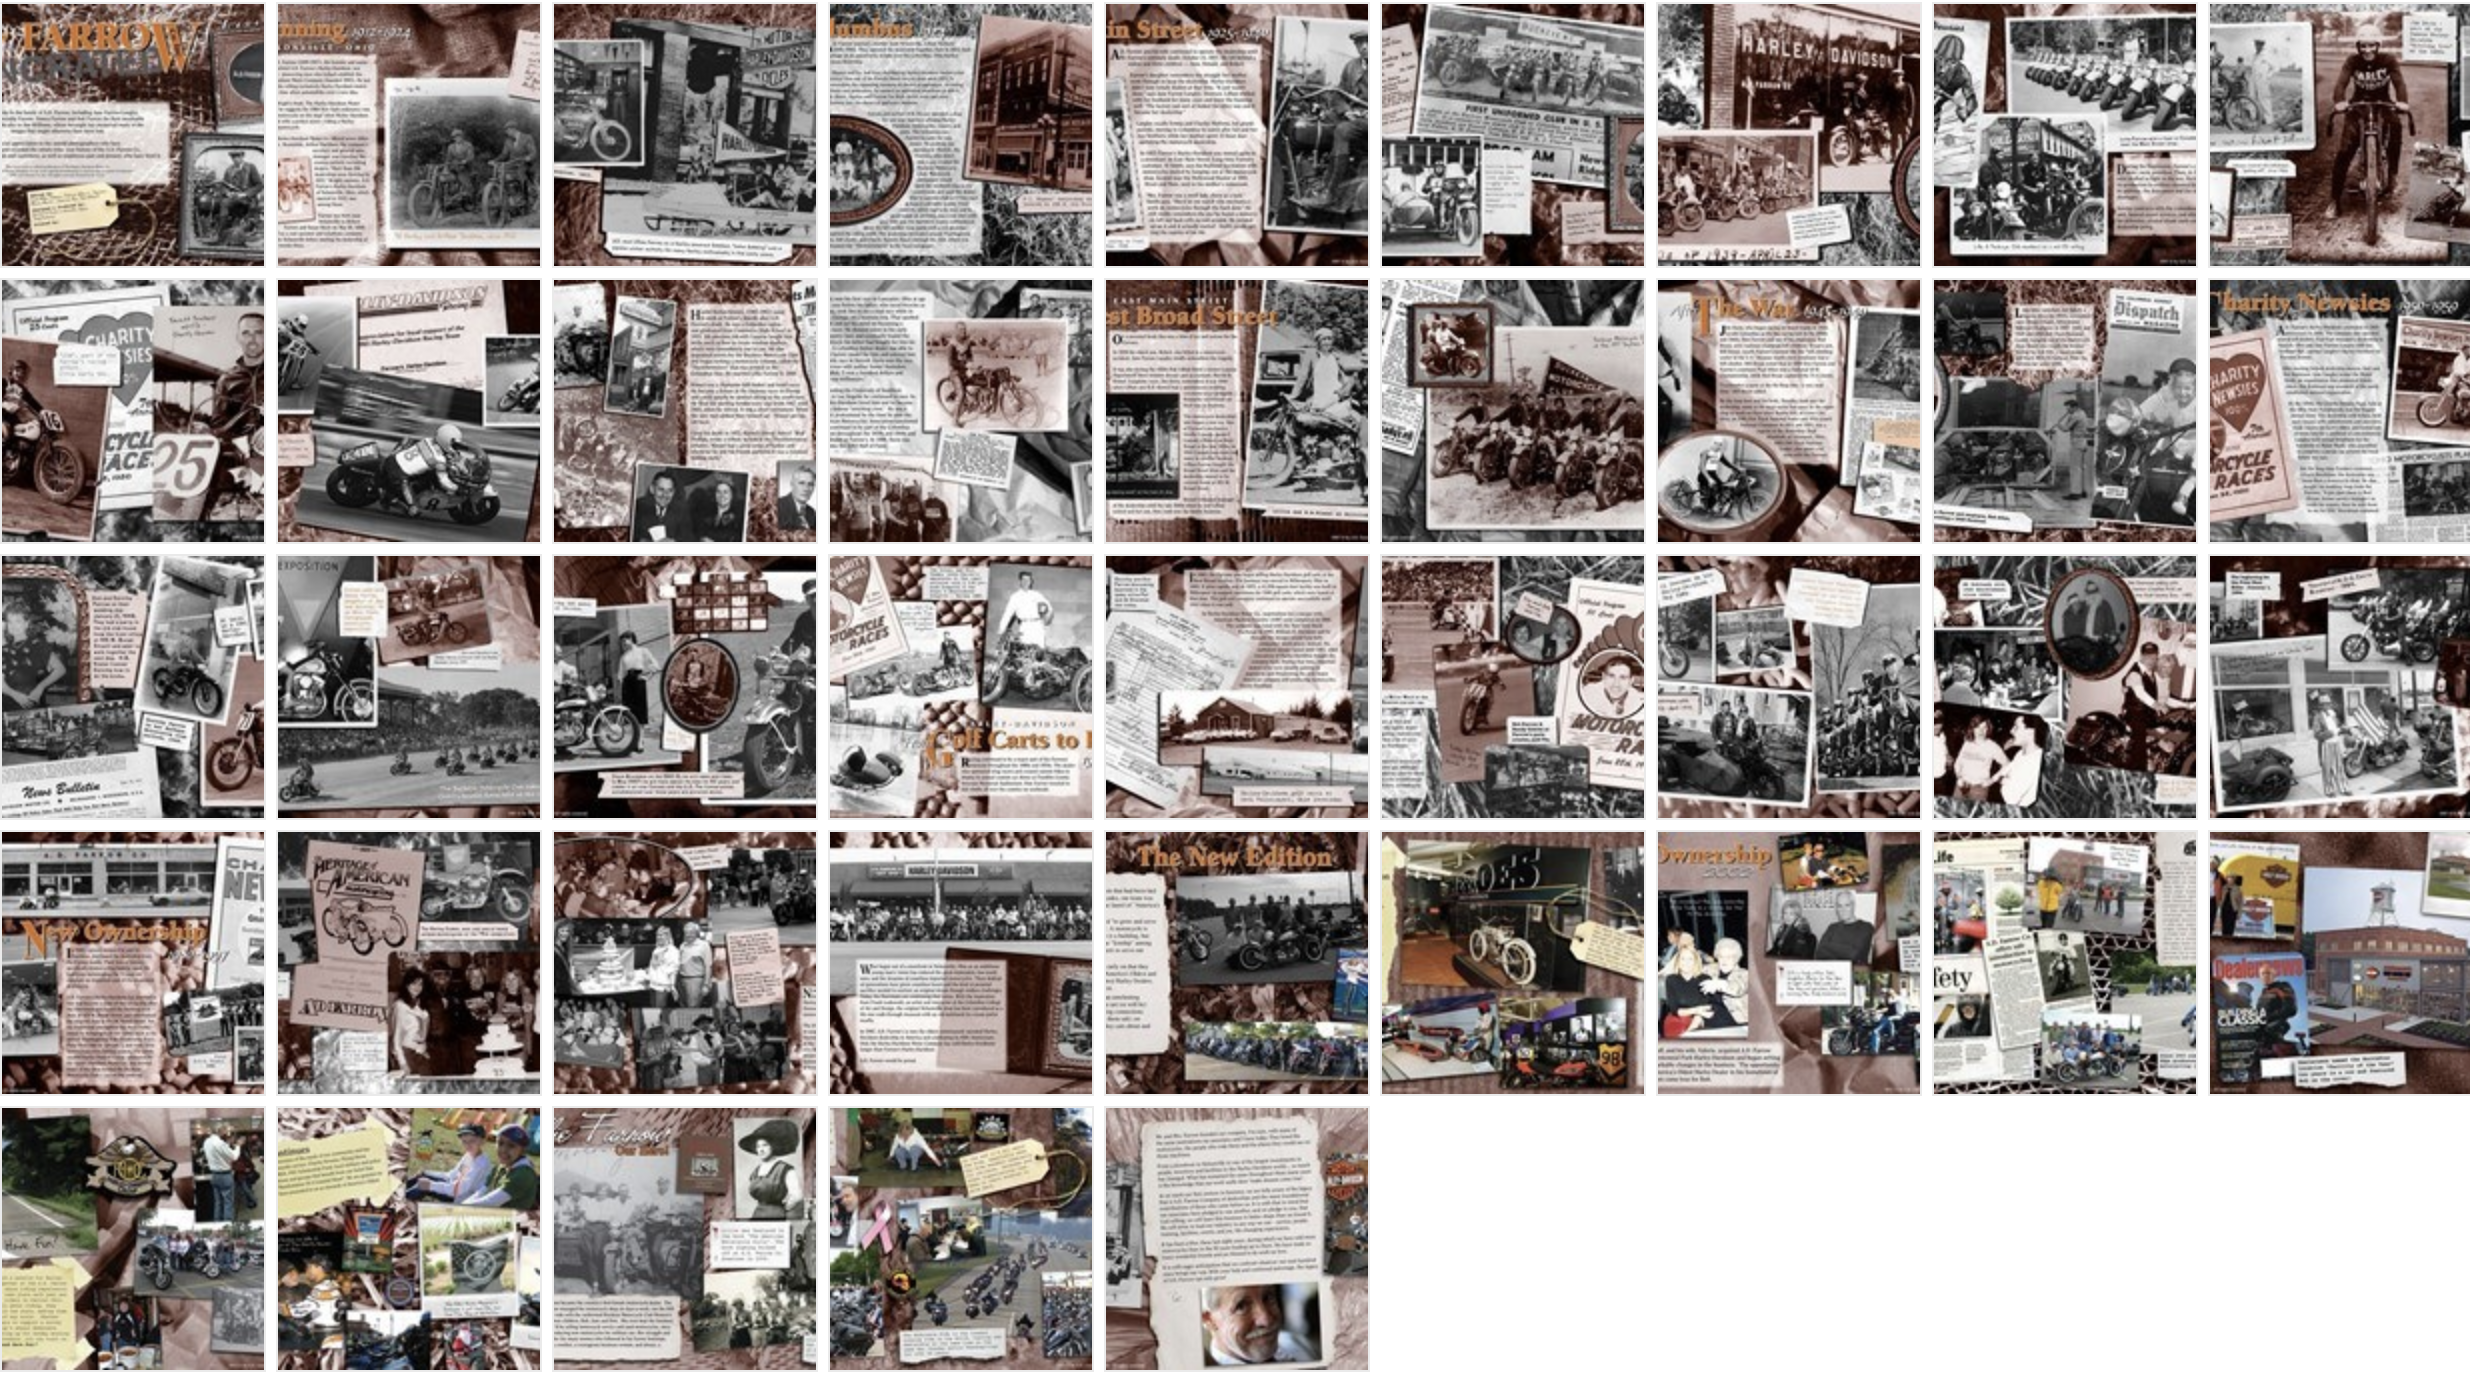 Pages Of History at Farrow Harley-Davidson®